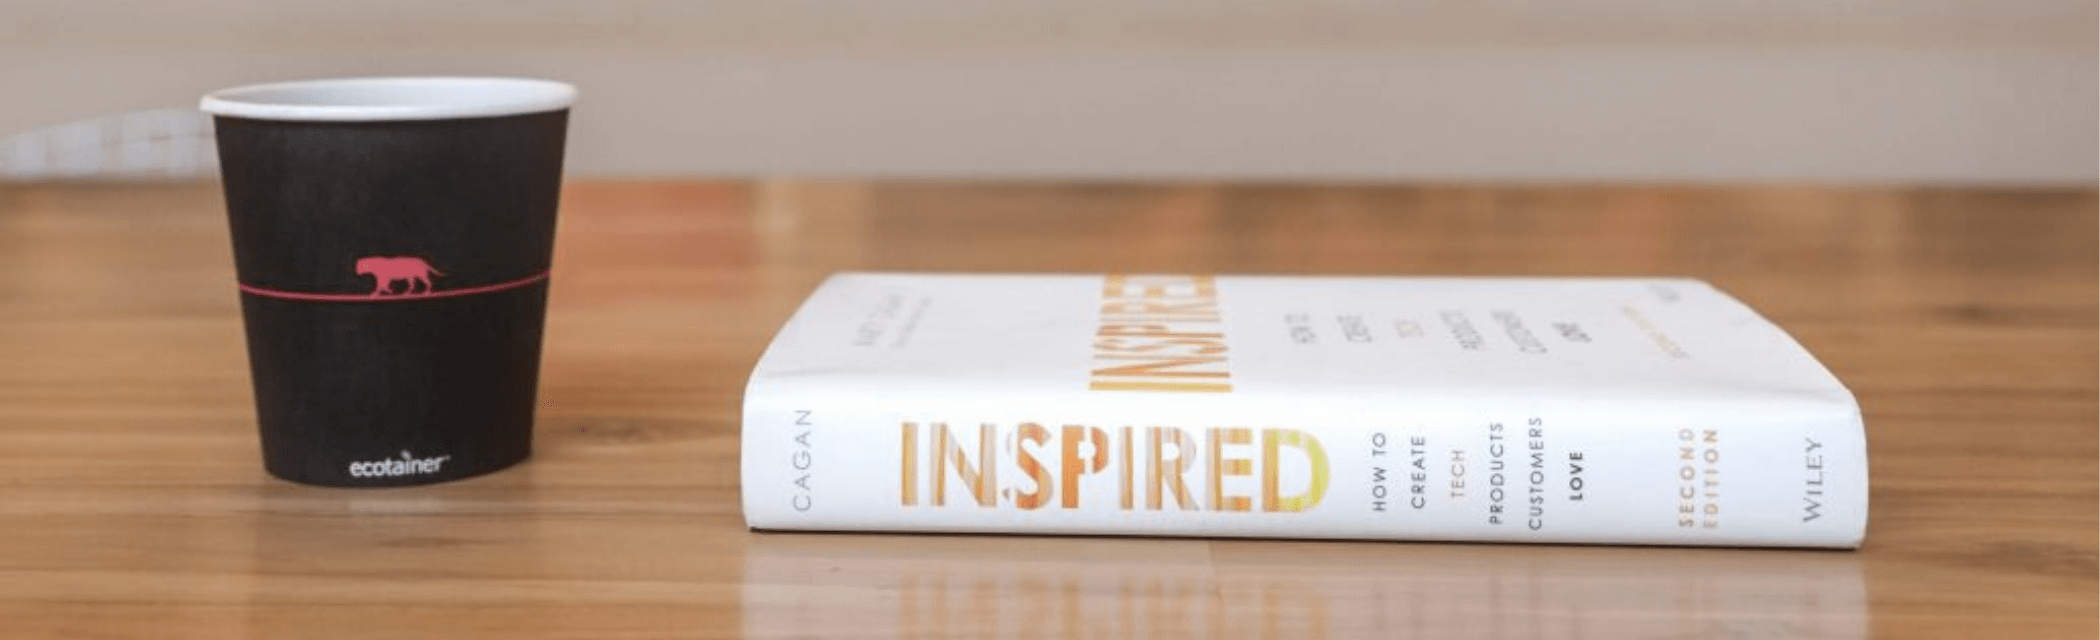 A review of Inspired, the product management classic by Marty Cagan